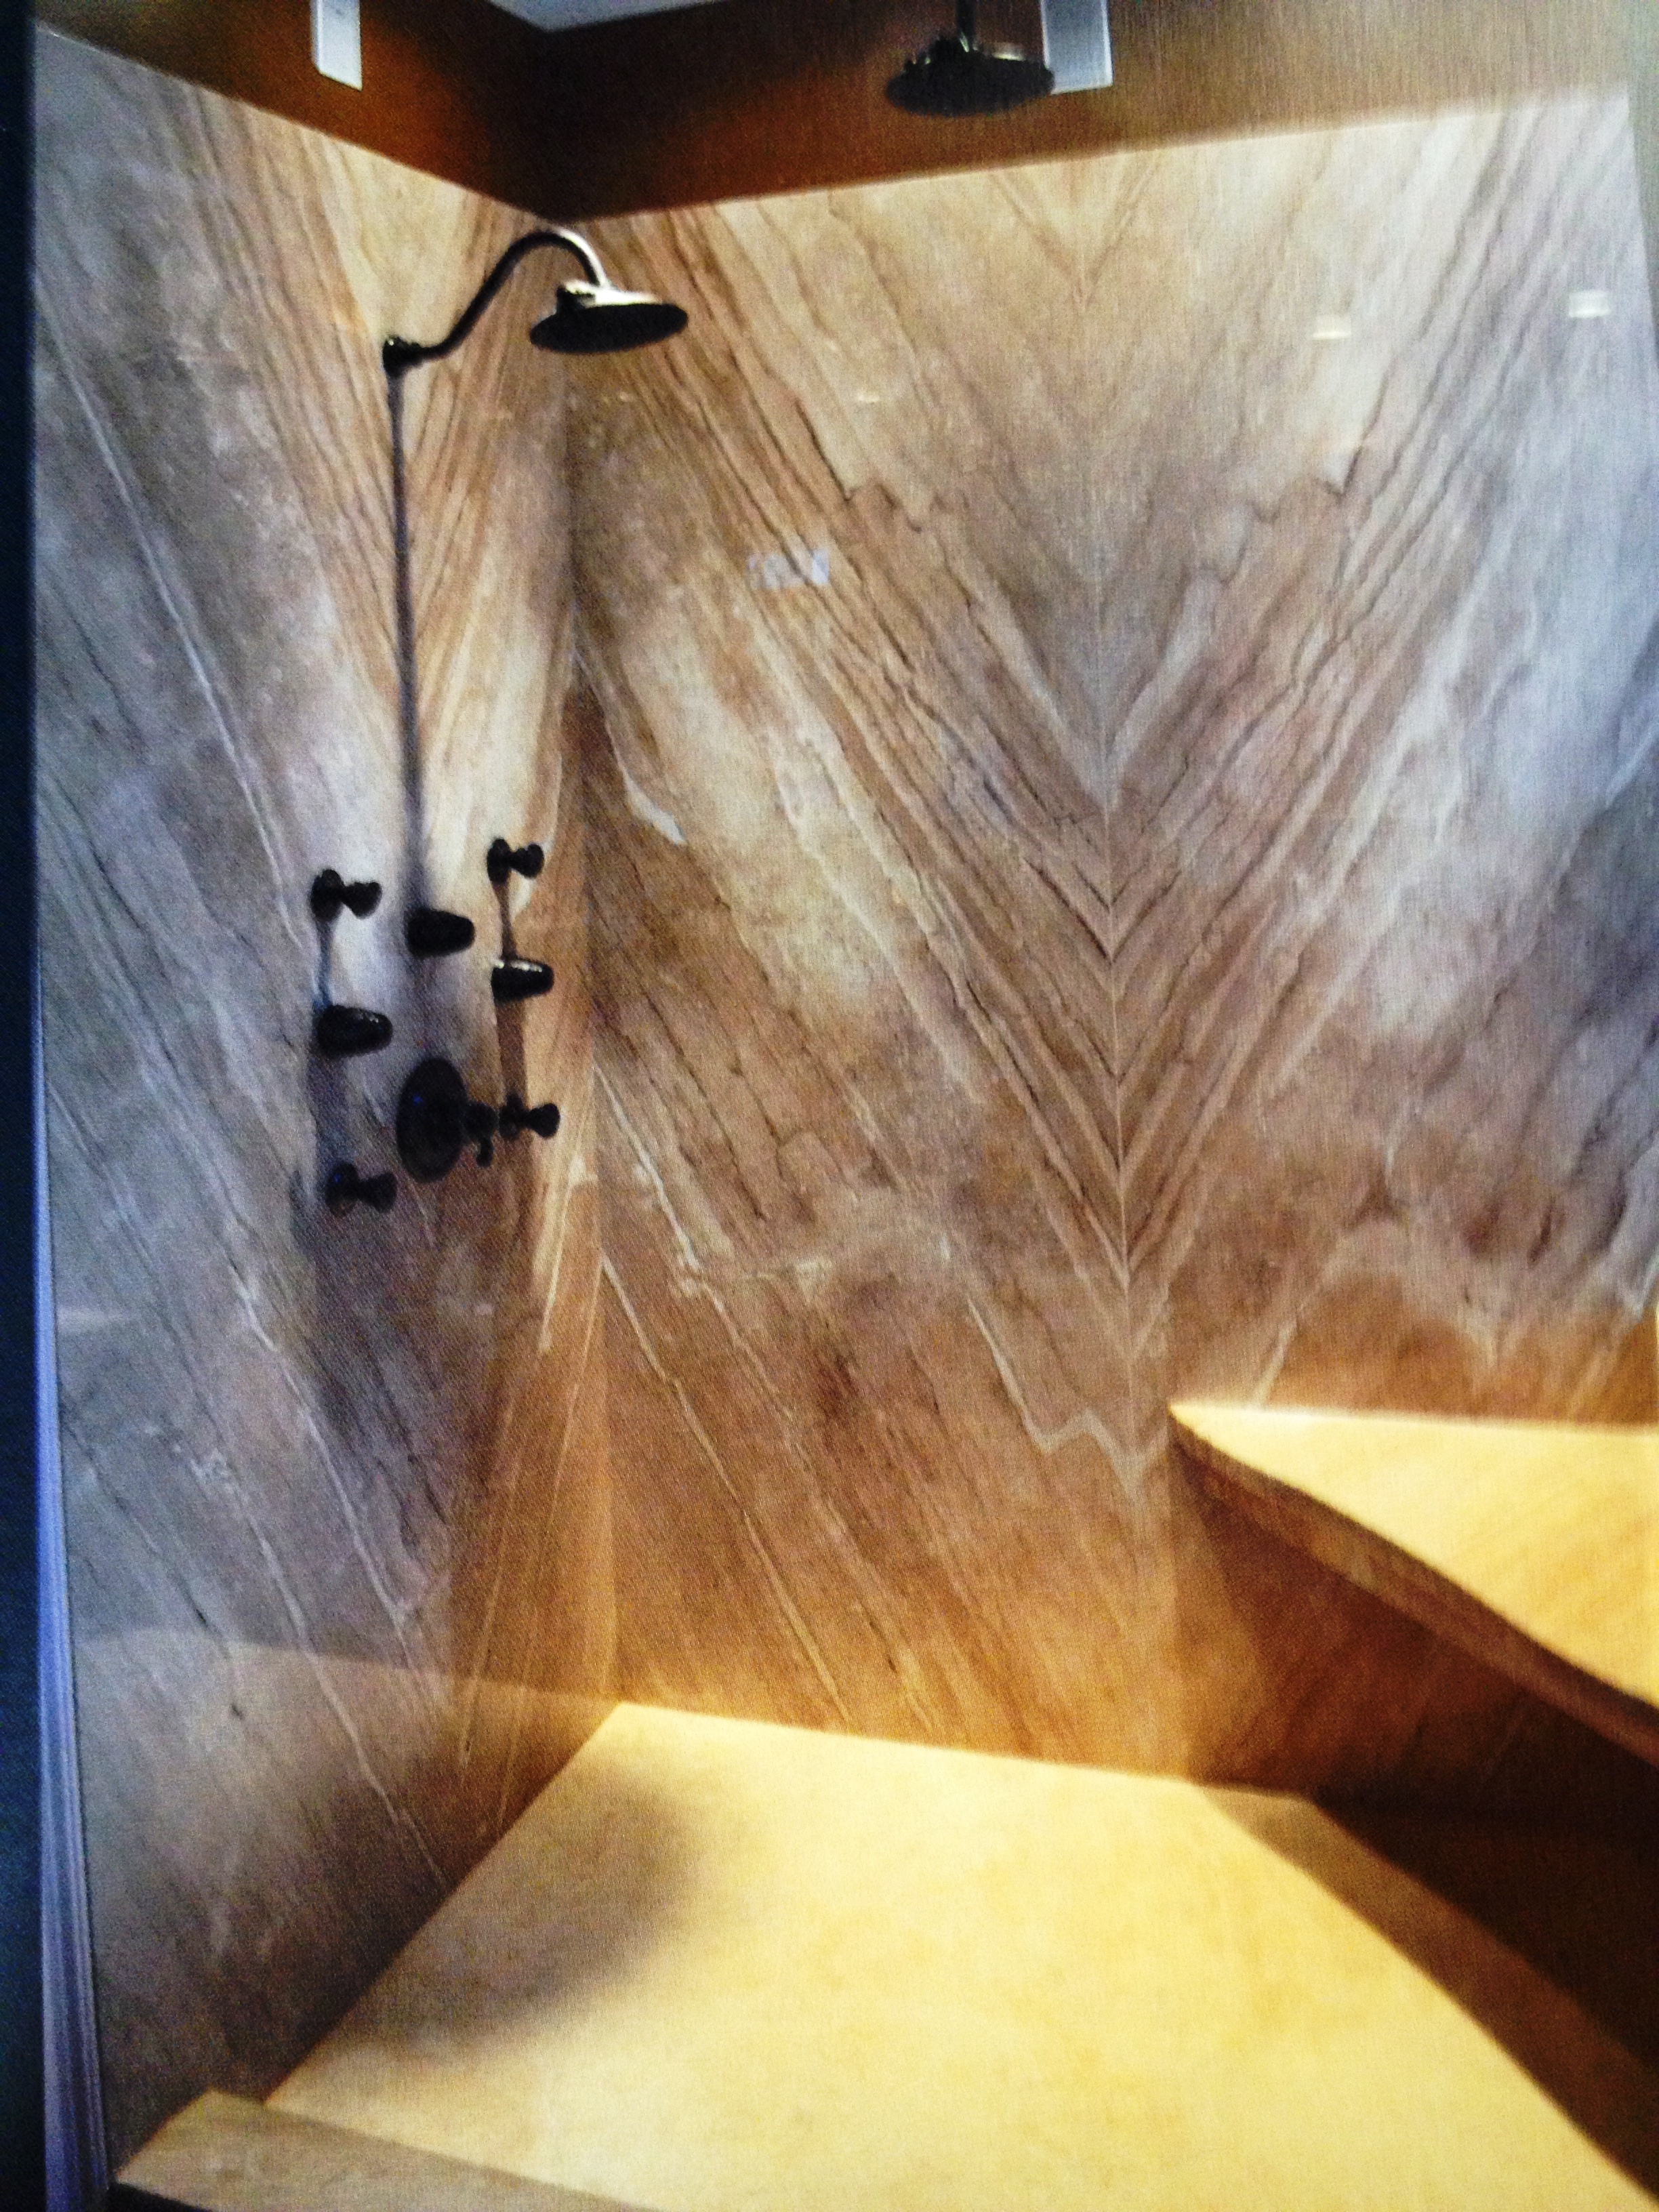 Four slabs of bookmatch Diano Reale marble and not a teaspoon of grout make up the master bath shower makeover. Cut to perfection!